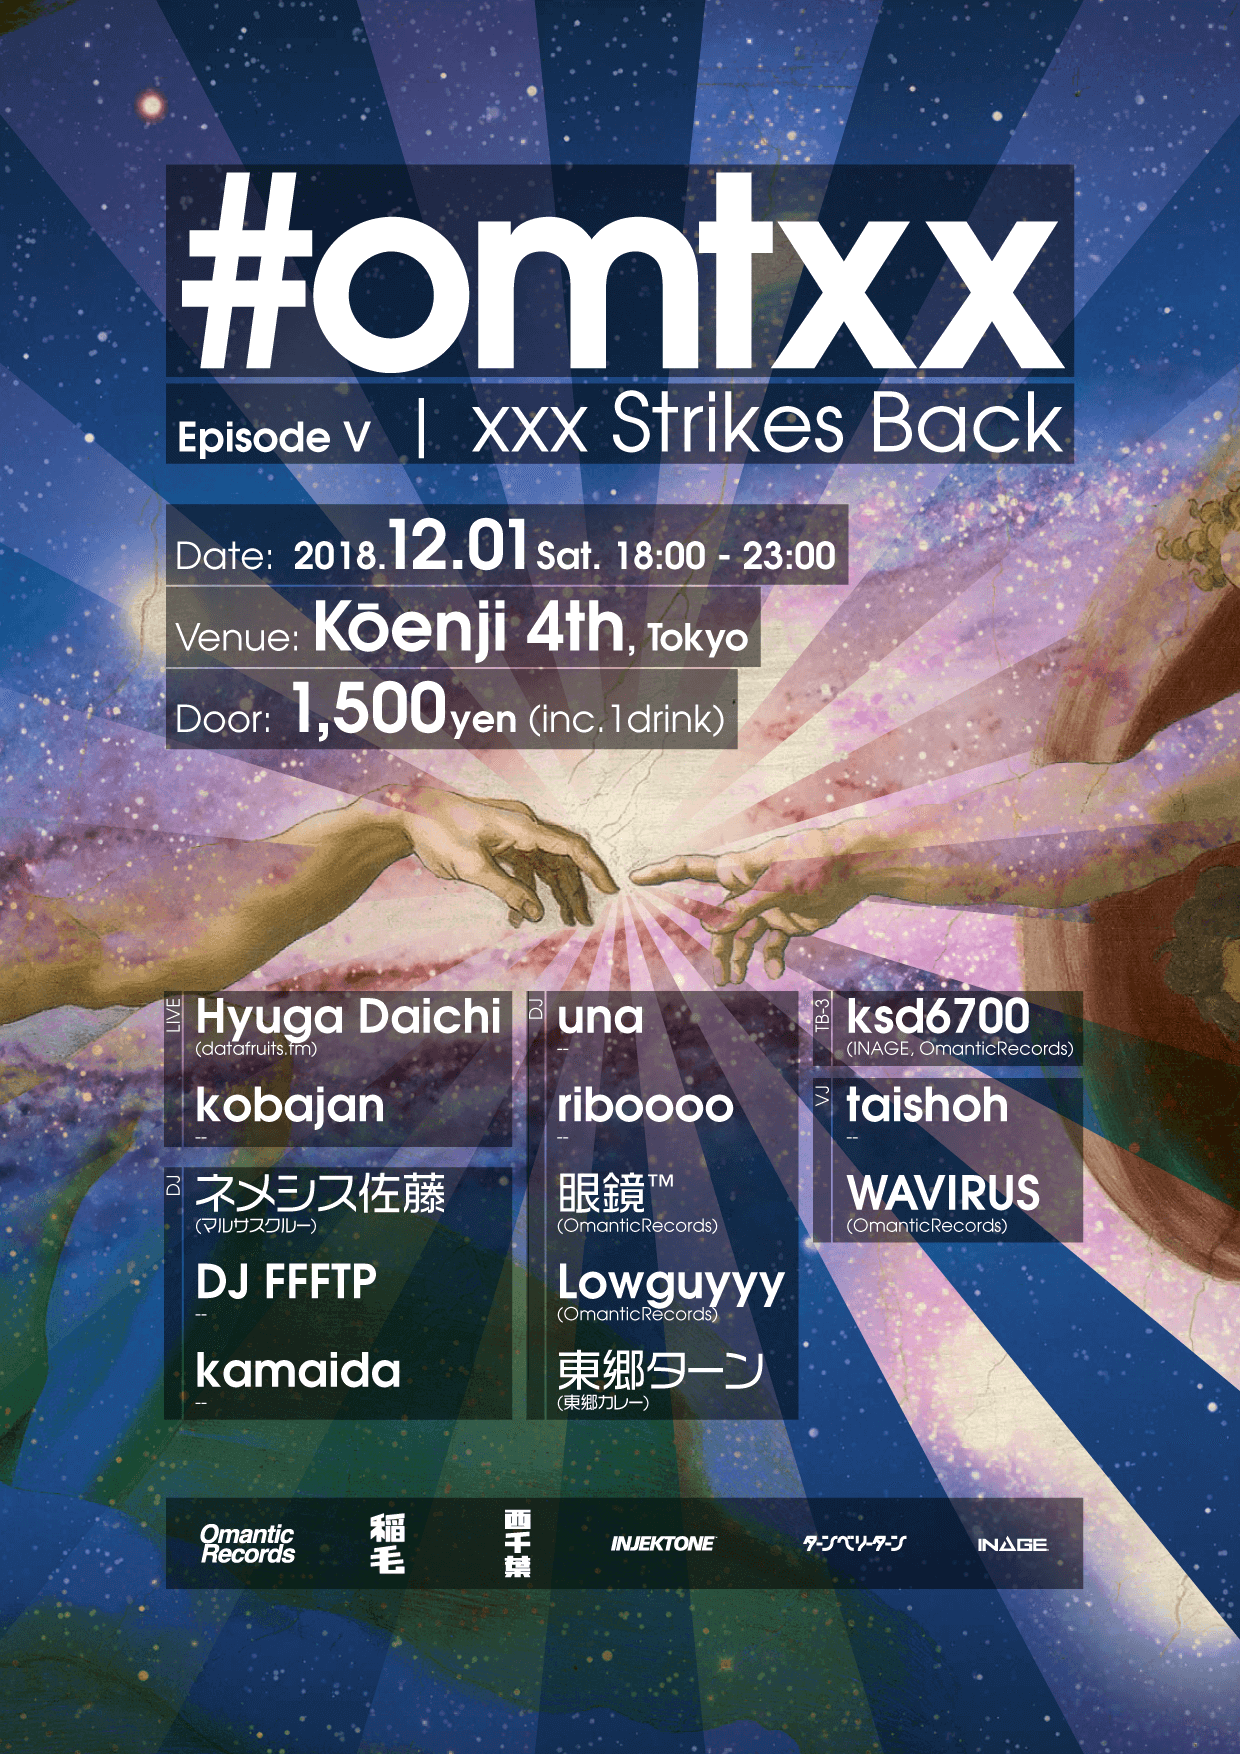 #OMTXX : Episode V  XXX Strikes Back